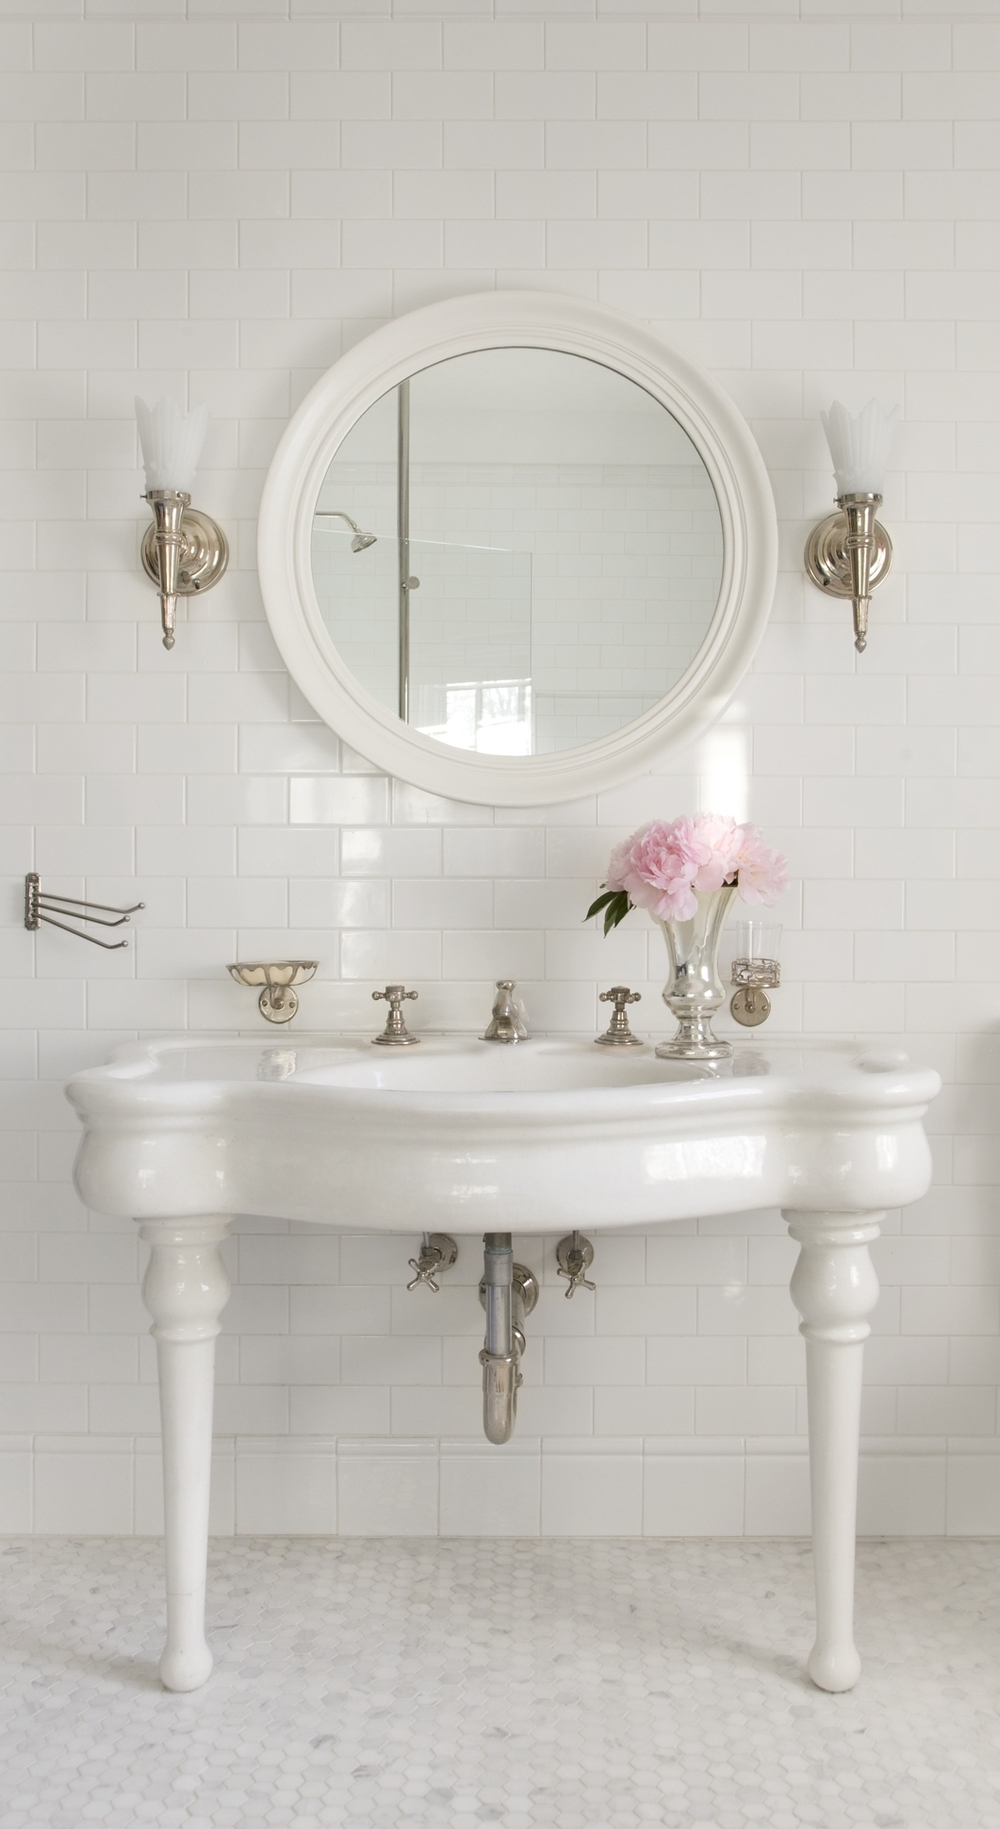 DNE Christine Lane Bathroom Sink Vignette.jpg